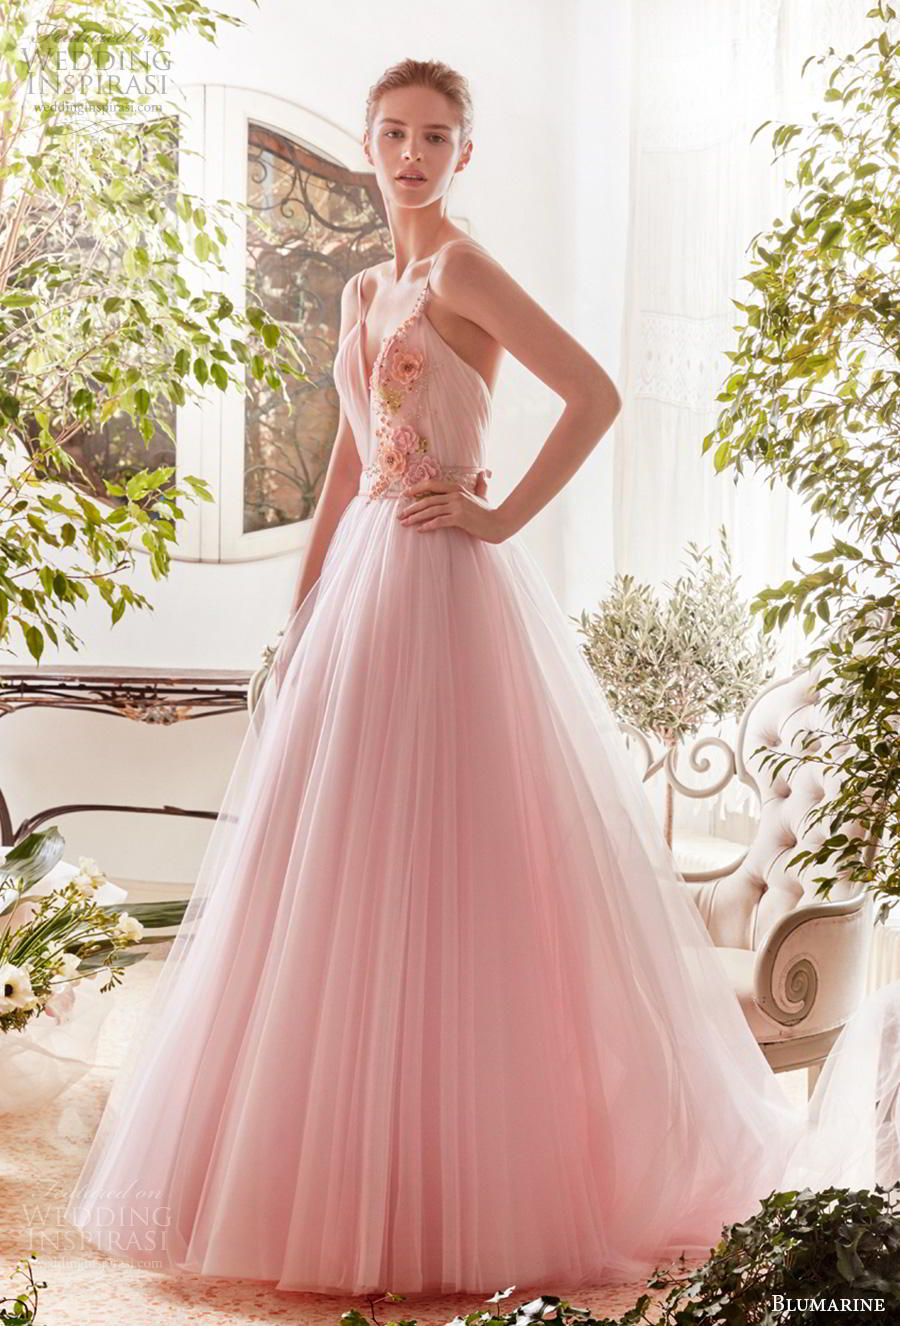 blumarine sposa 2019 bridal sleeveless thin strap sweetheart neckline ruched bodice tulle skirt romantic pink a  linw wedding dress open v back medium train (1) mv